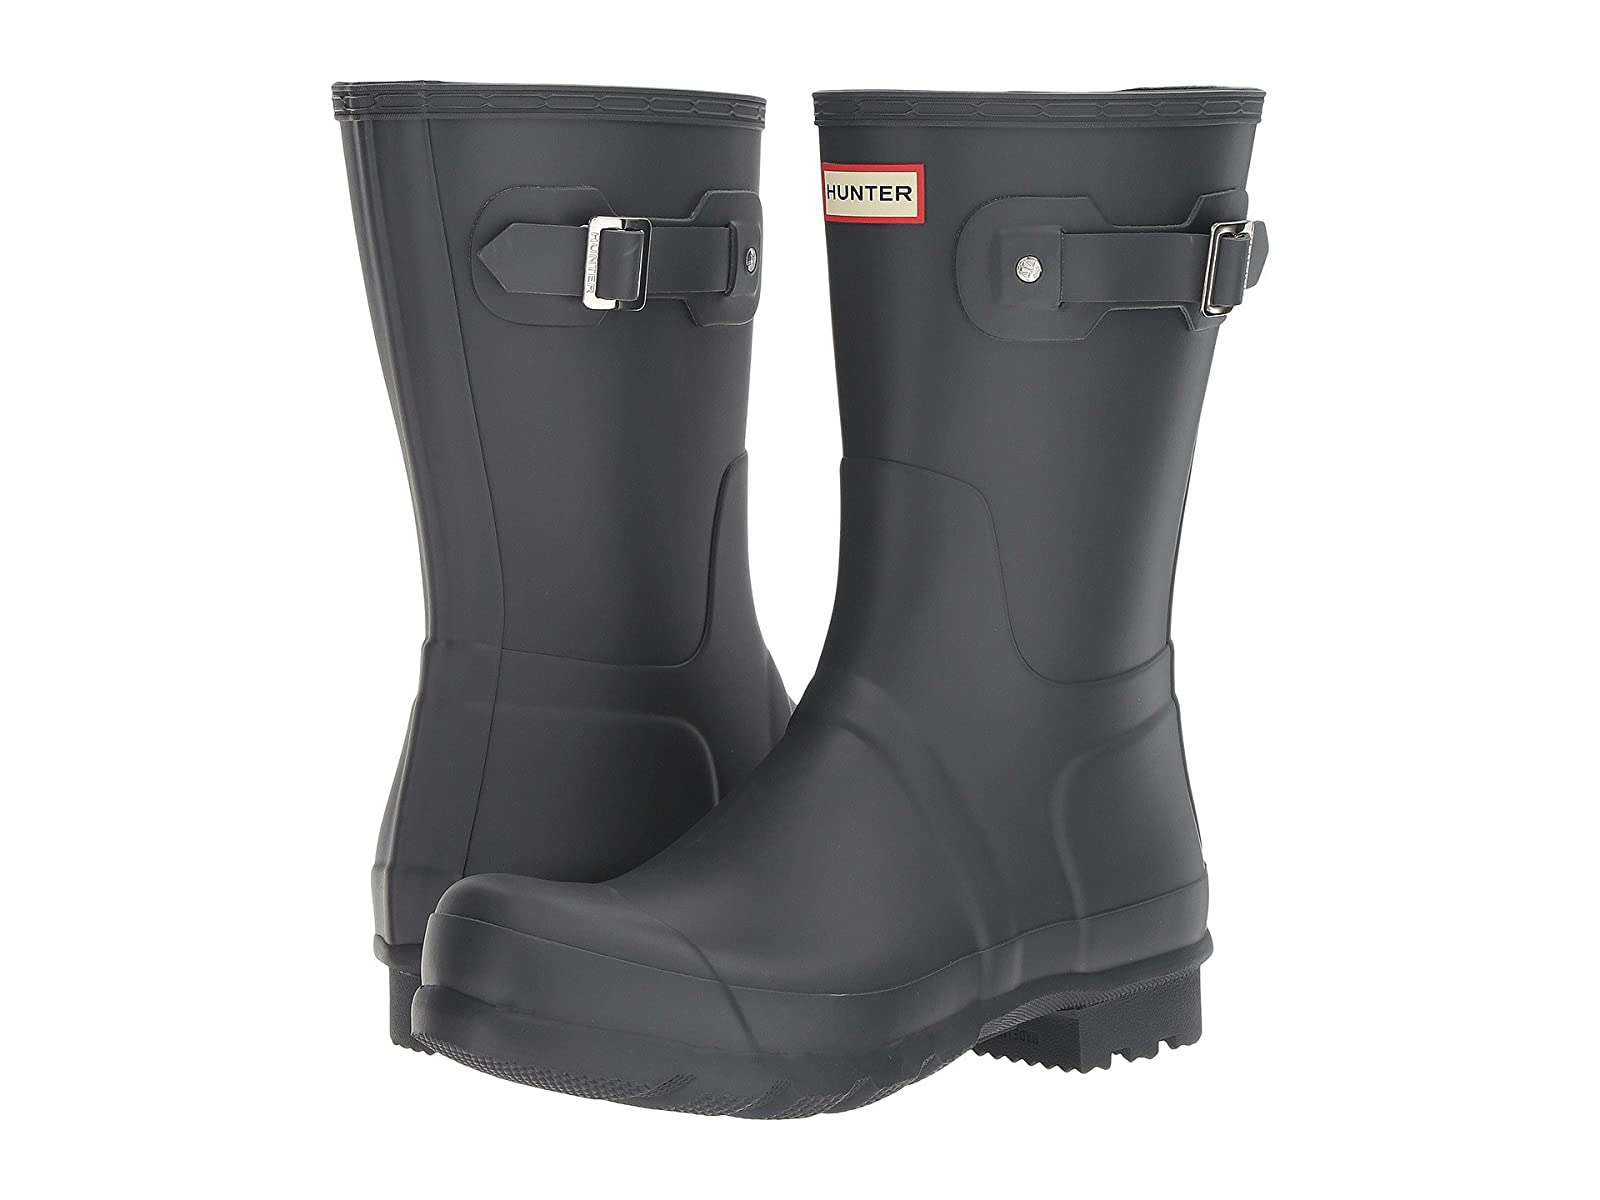 Hunter Original Short Rain BootsAffordable and distinctive shoes